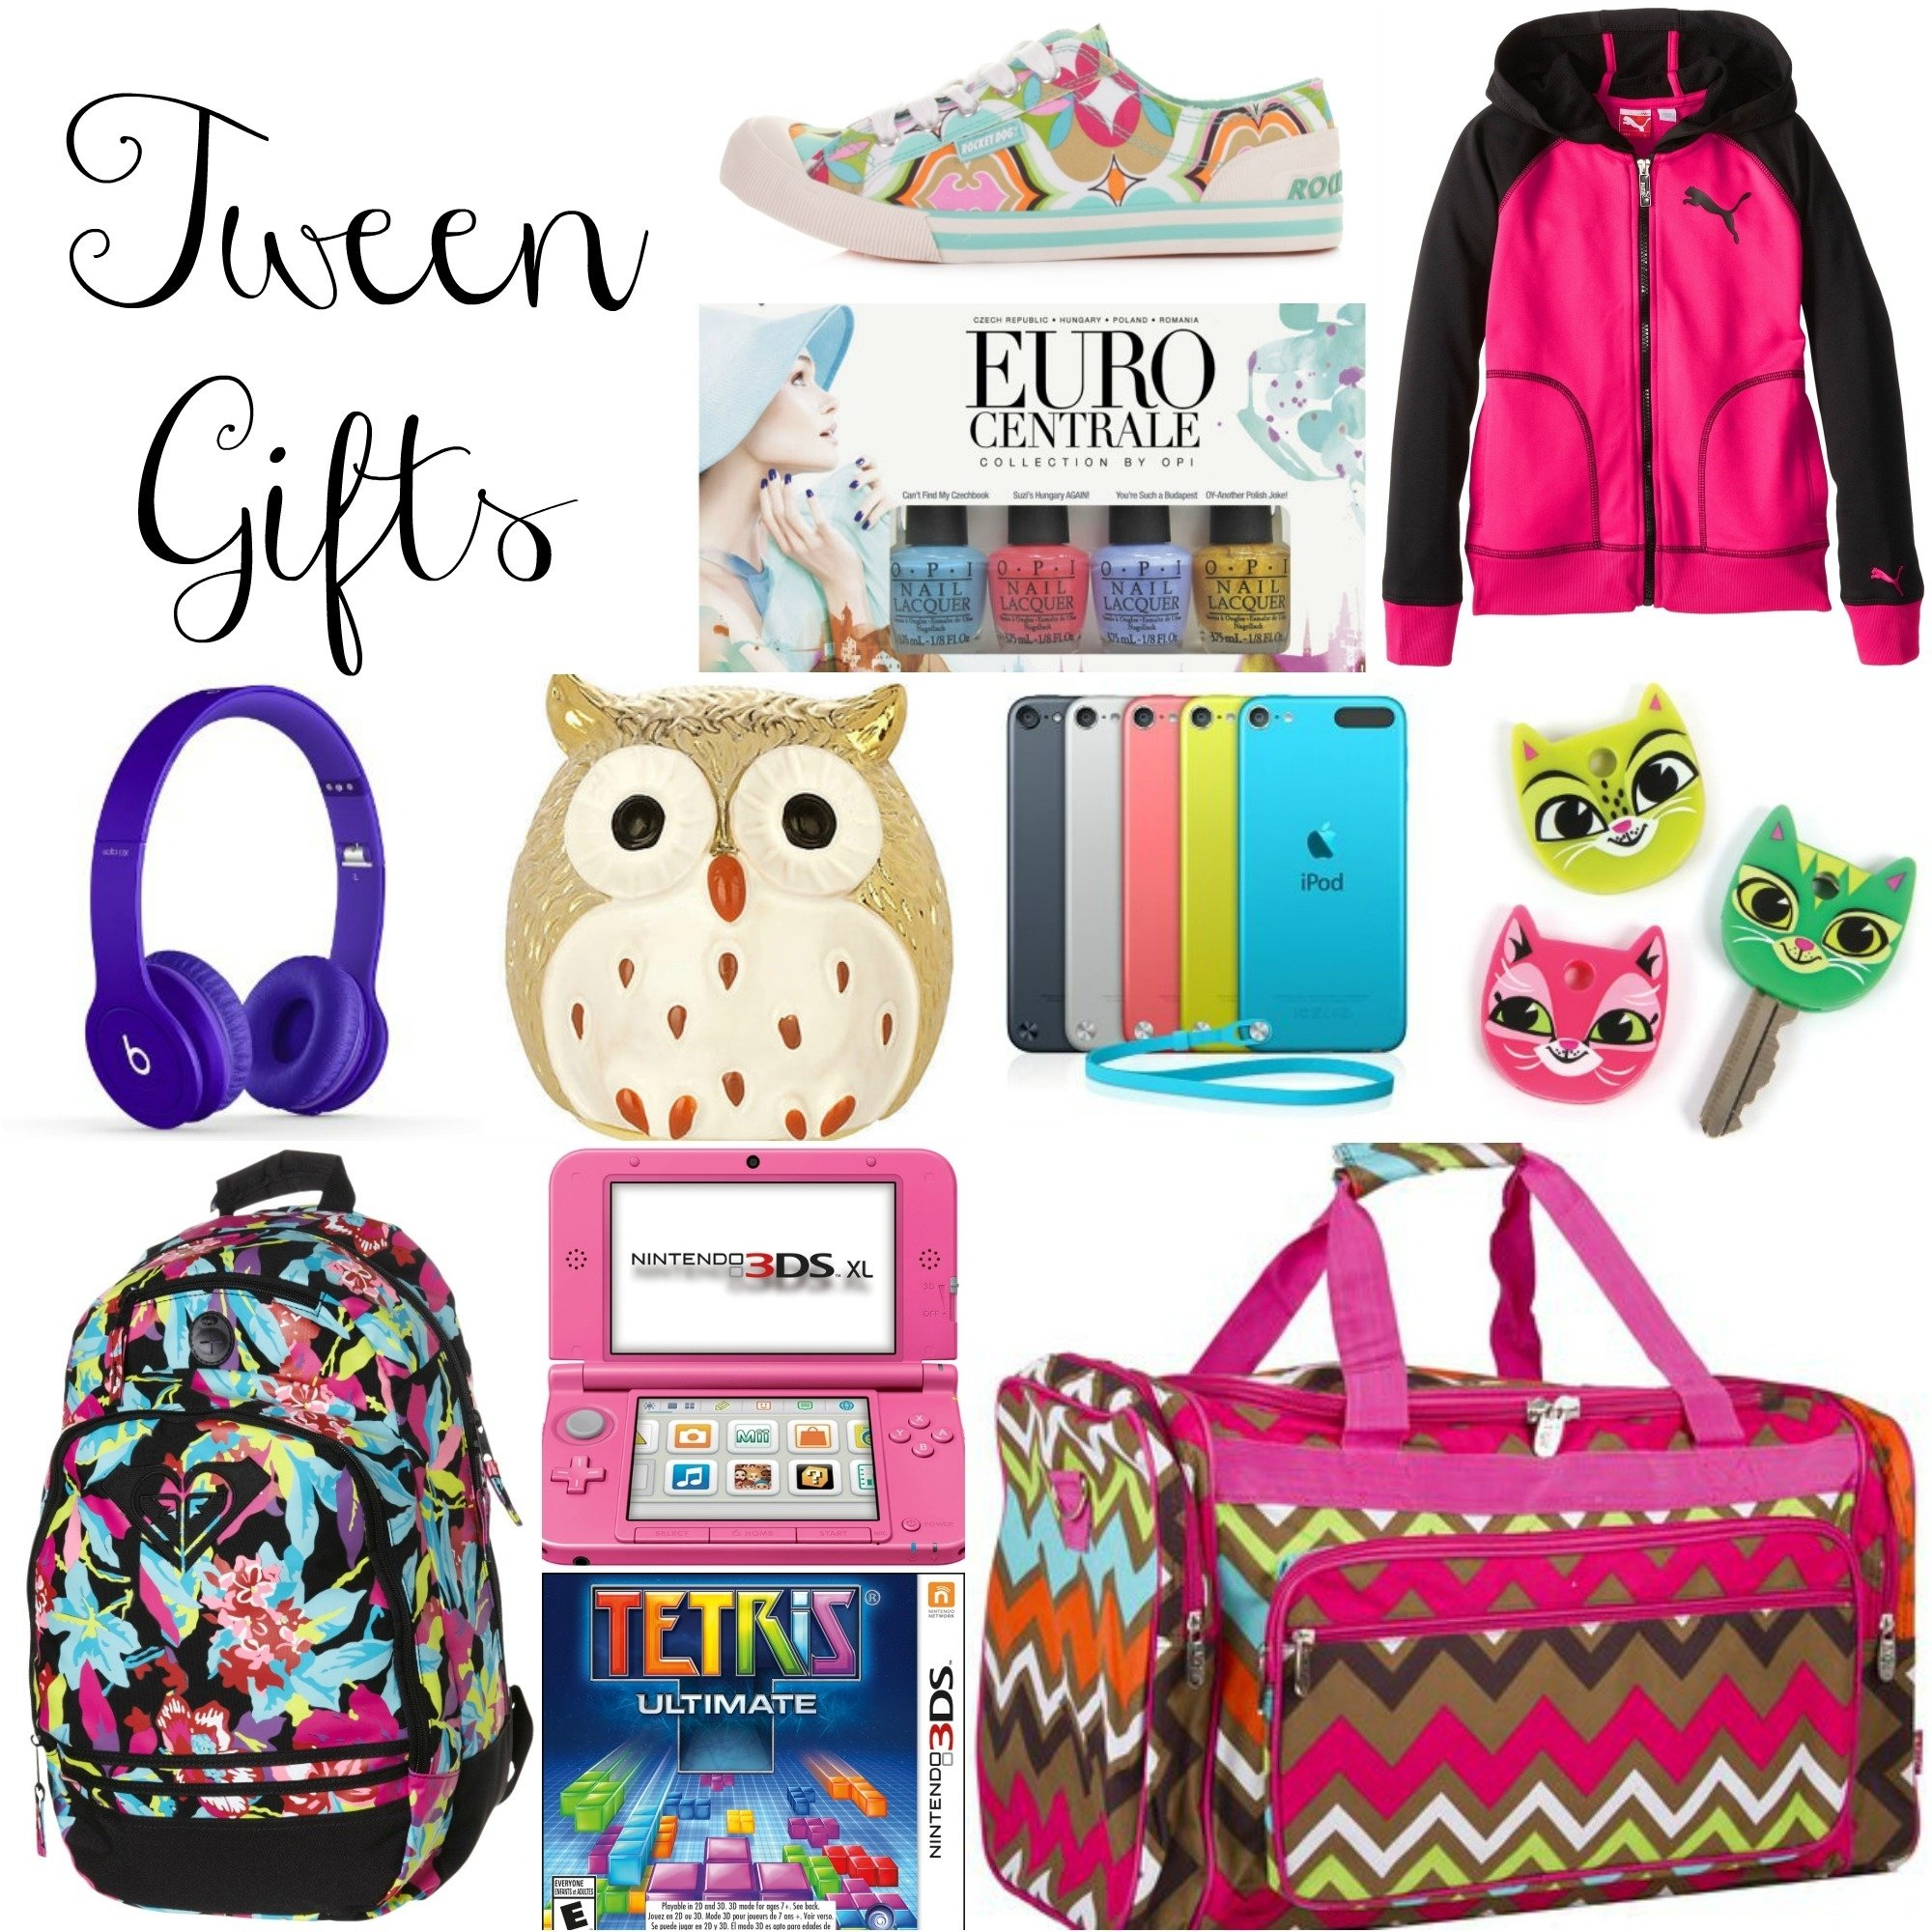 10 Trendy Christmas Gift Ideas For Tween Girls 21 great gifts for tweens confessions of a 4 2020